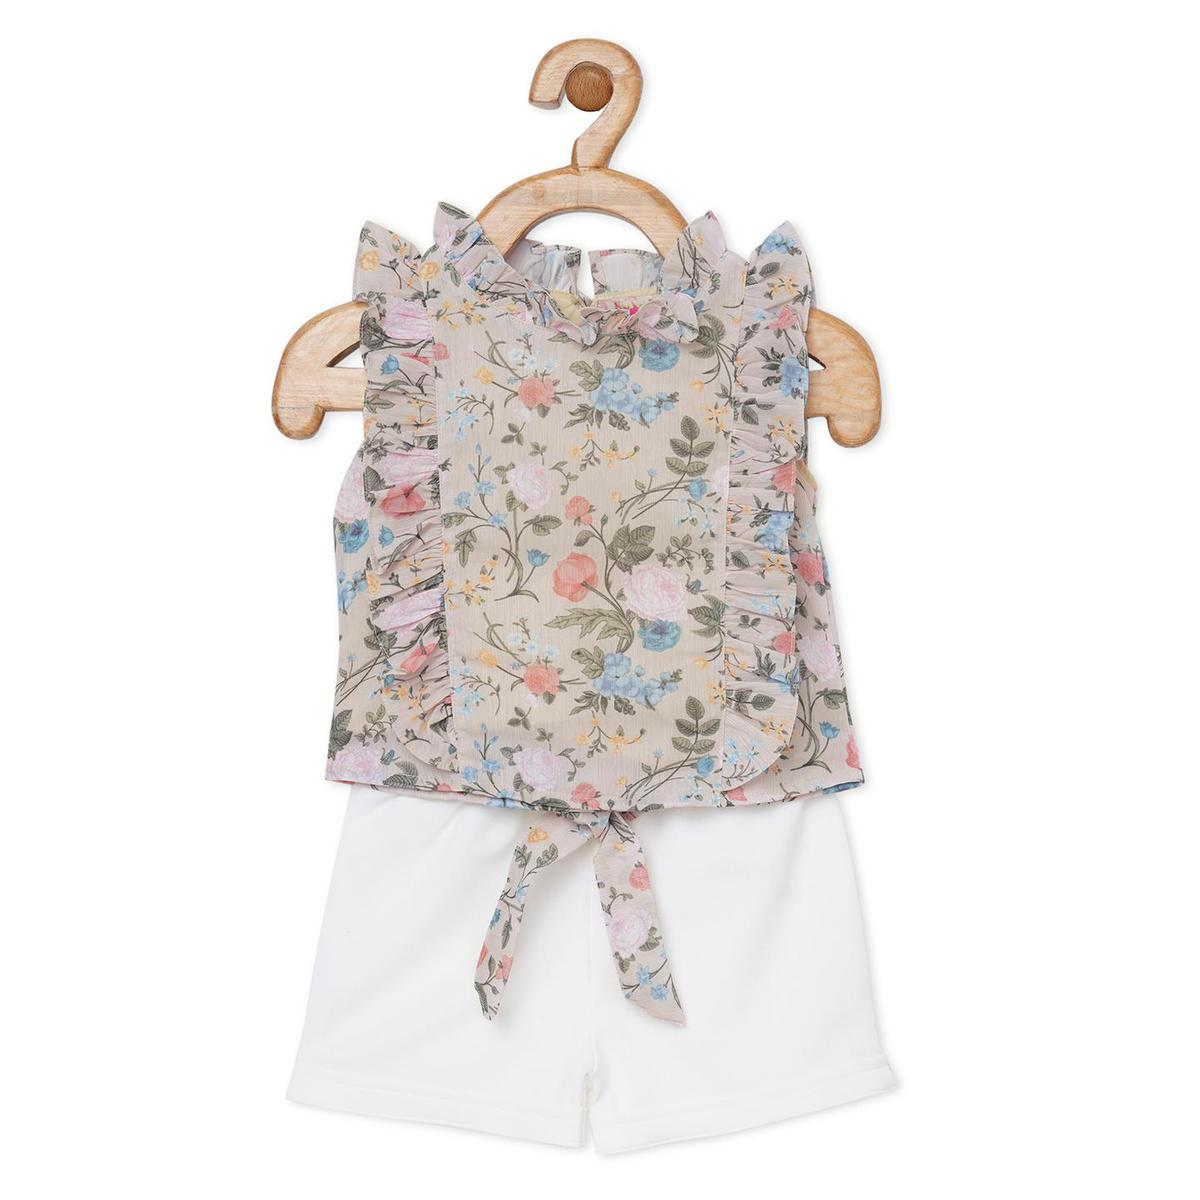 Powderfly - Day Lily Soft Georgette Shorts And Top Set Fawn